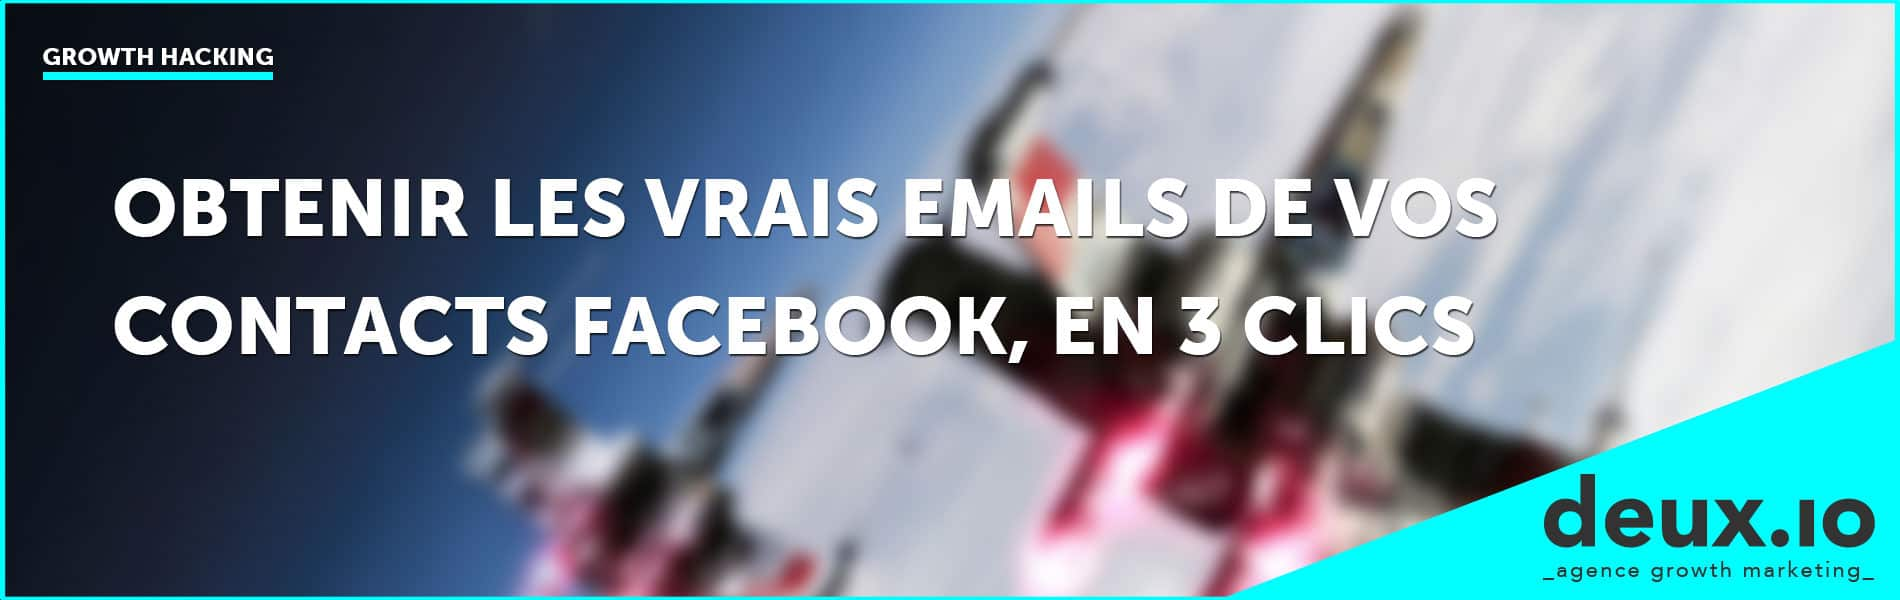 growth hack obtenir les vrais emails de vos contacts Facebook en 3 clics